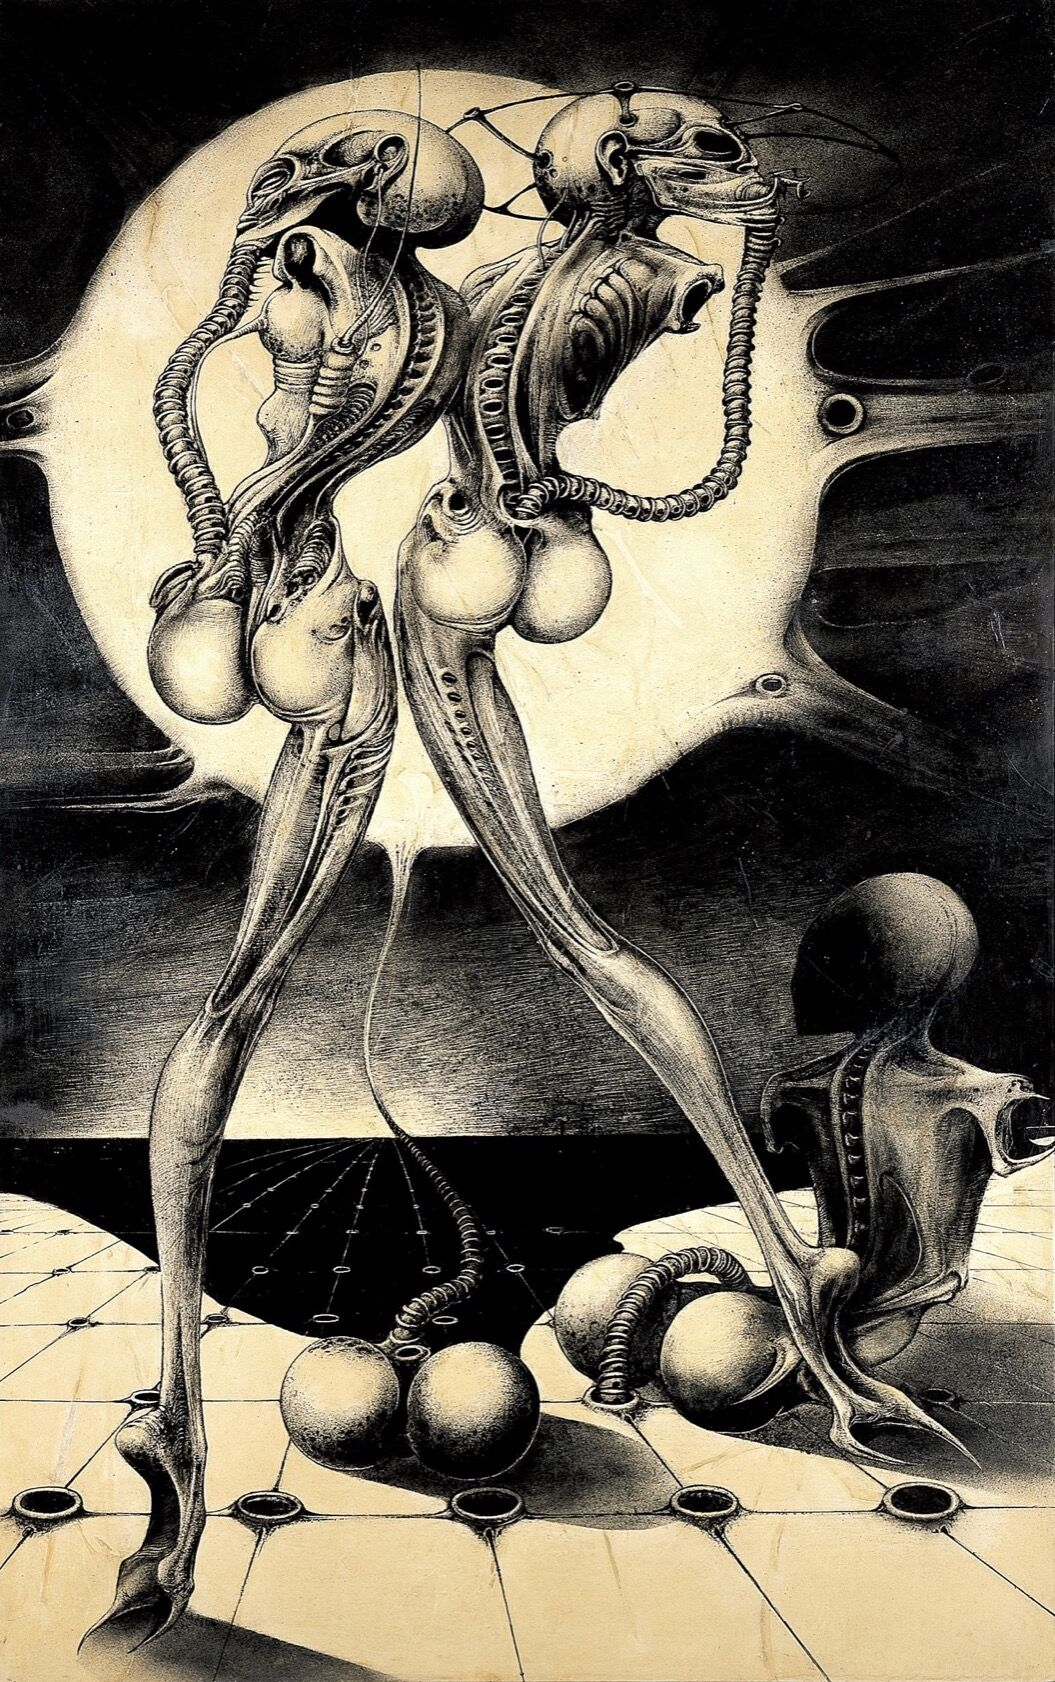 H.R. Giger, Atomic Children, 1968. Courtesy of the H.R. Giger Museum.